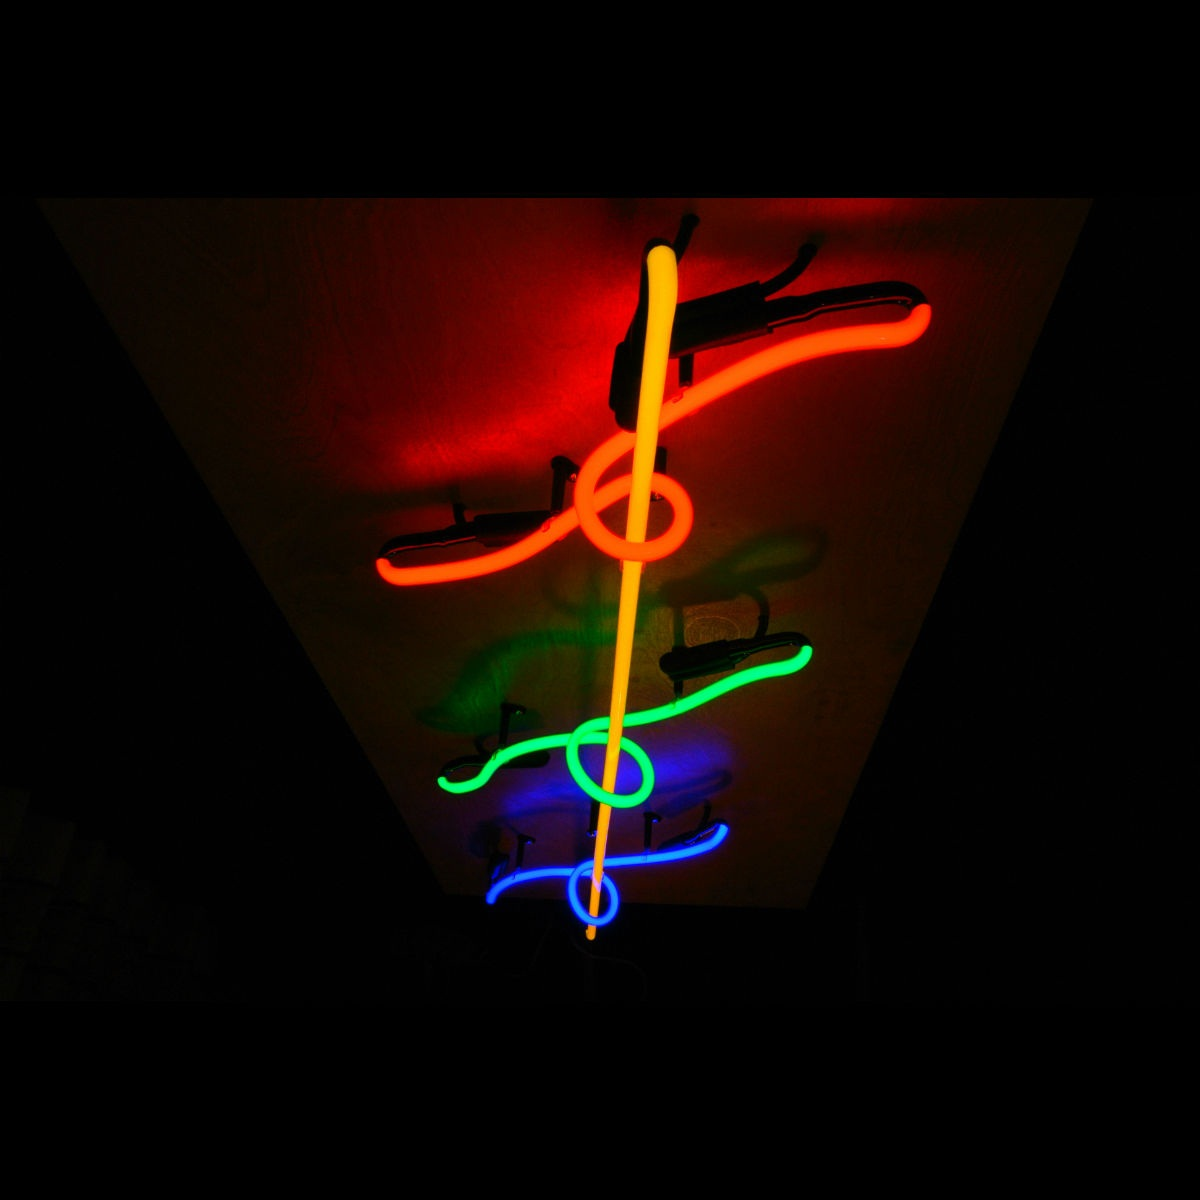 MAGIC SPIRAL Stained Murano Italian Glass Neon Light Fixture by John Barton - BartonNeonMagic.com